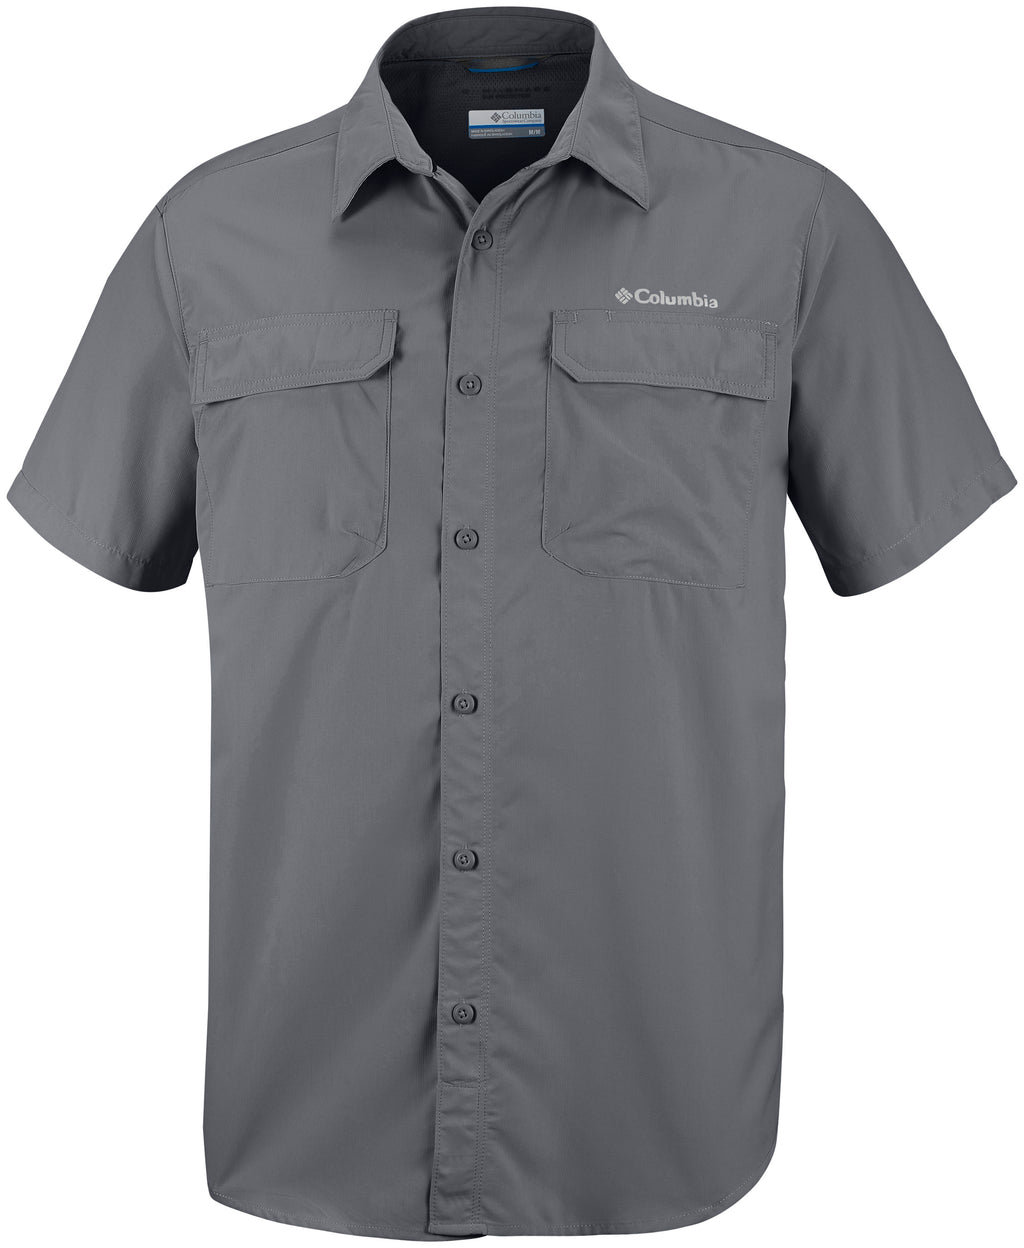 Columbia Men's Silver Ridge II SS promotional Shirt